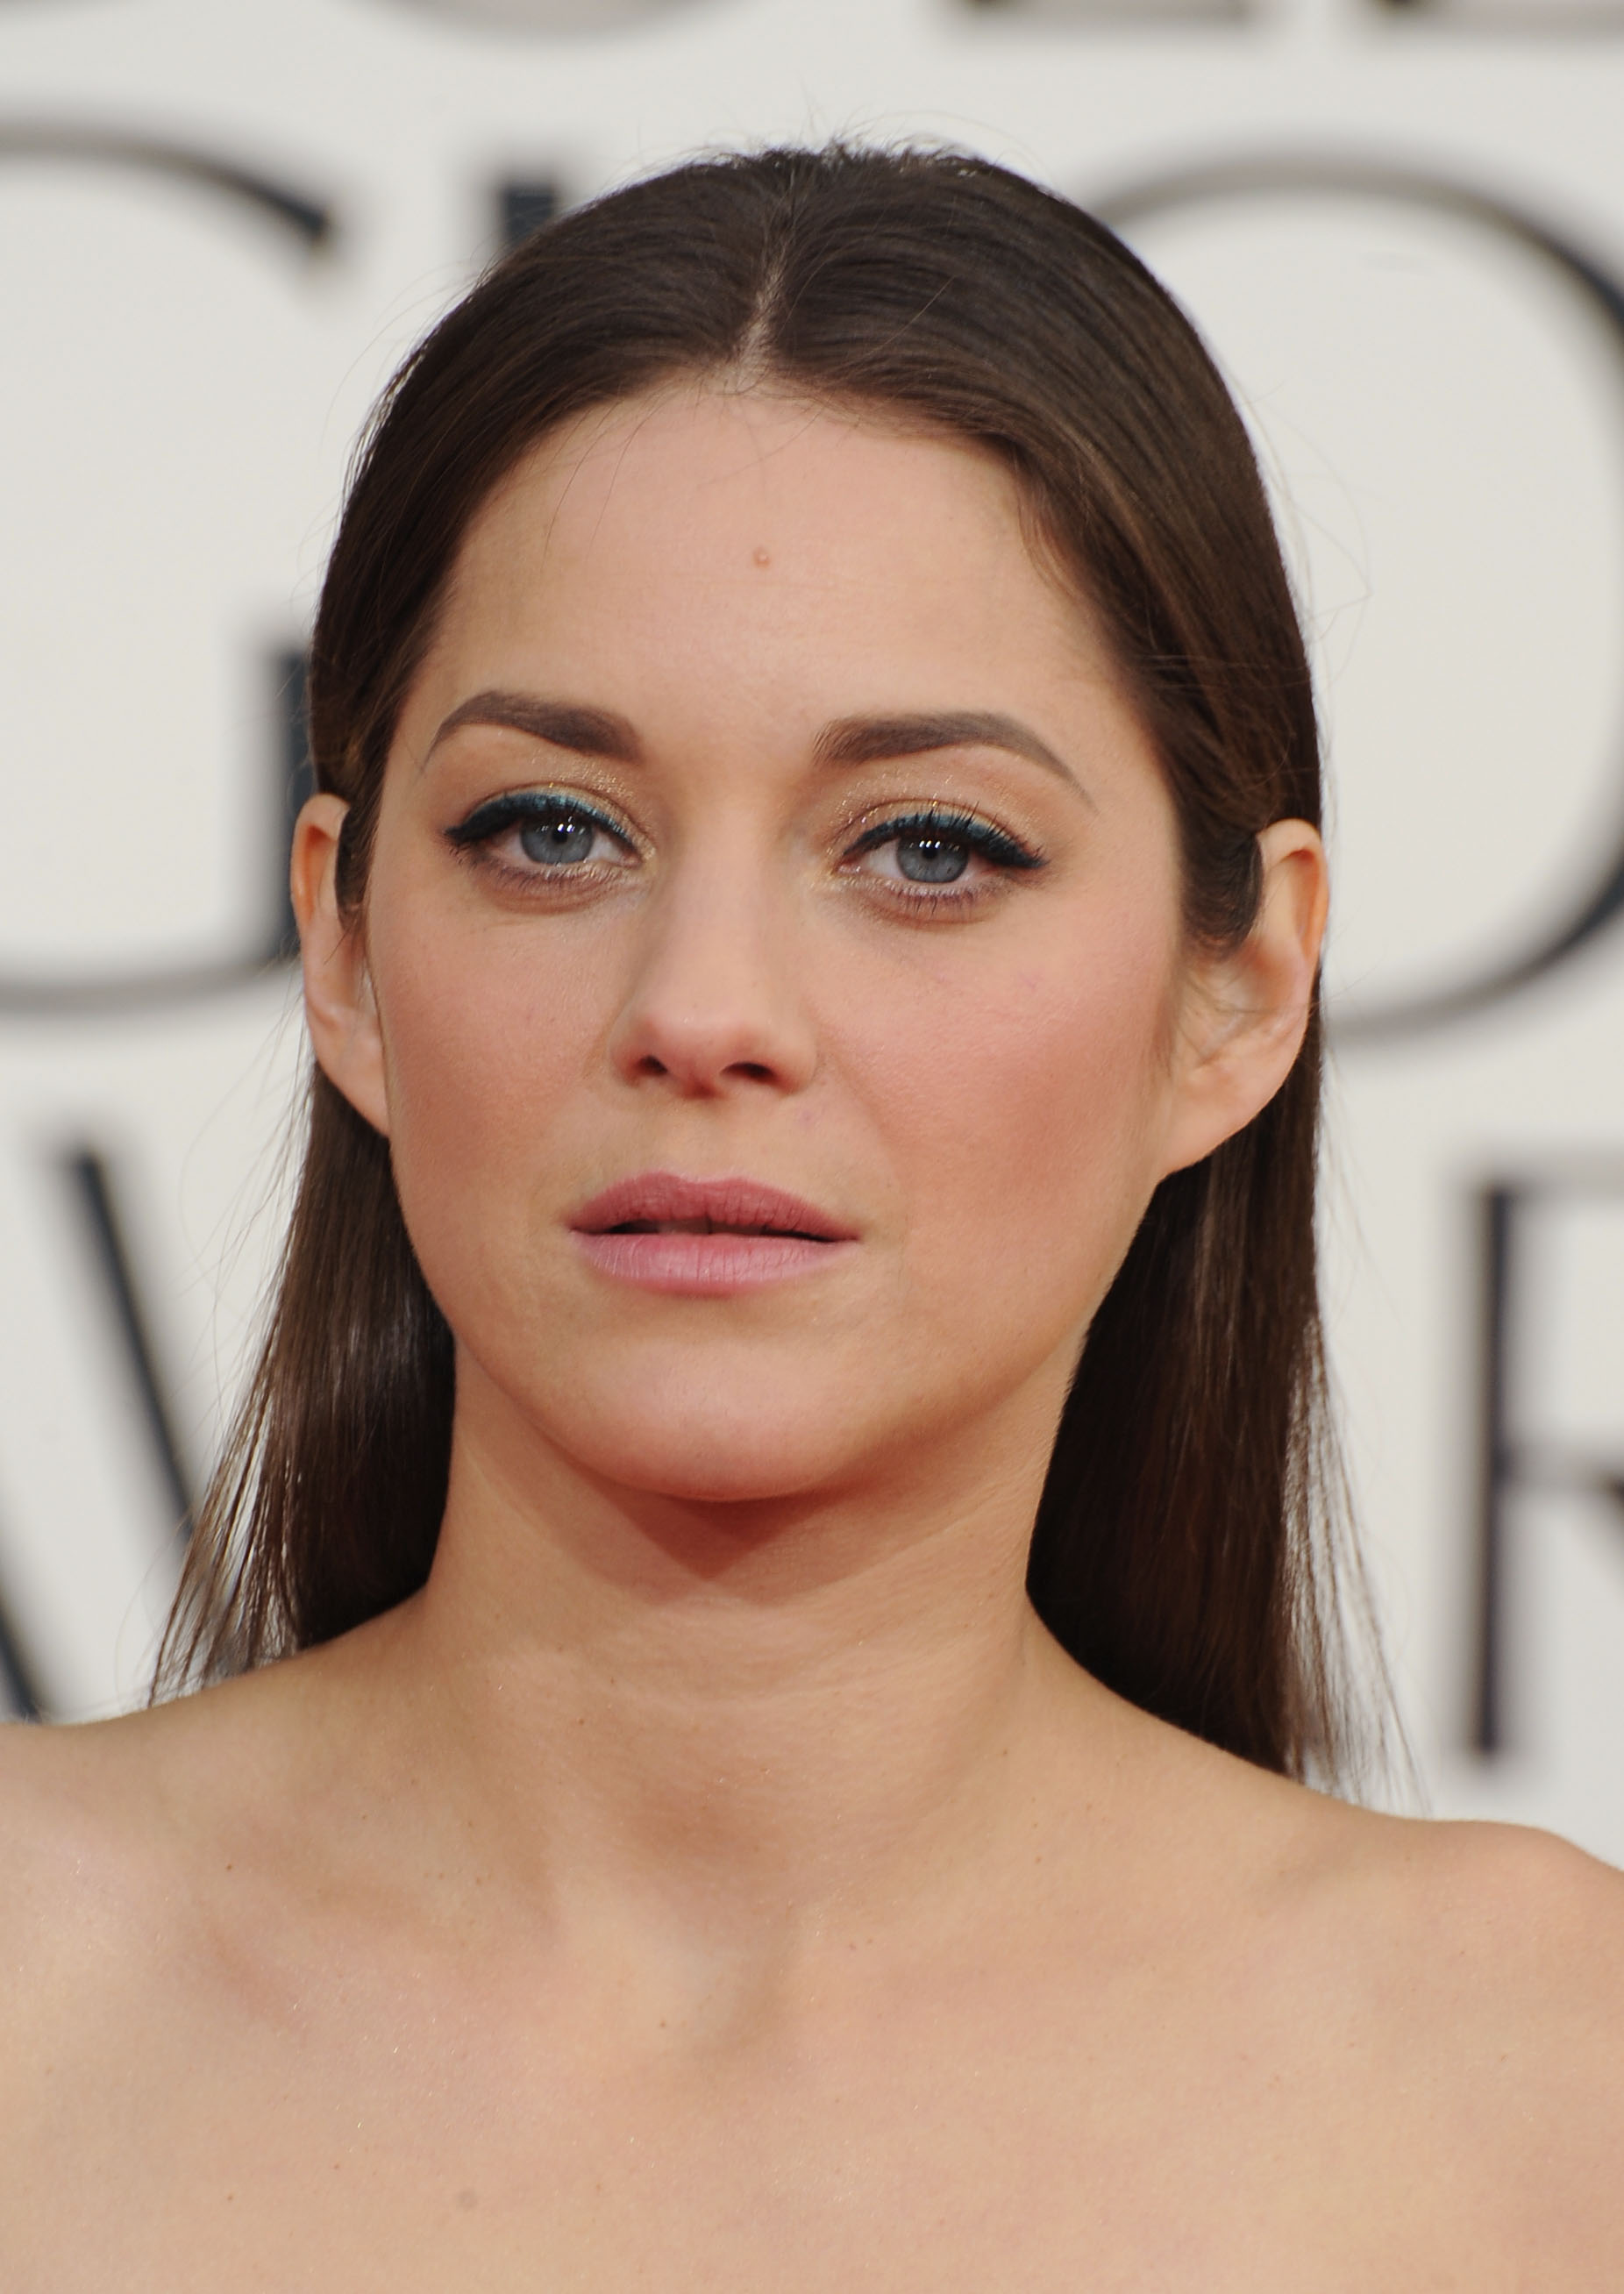 Marion Cotillard arrived on the red carpet ready for her close-up.